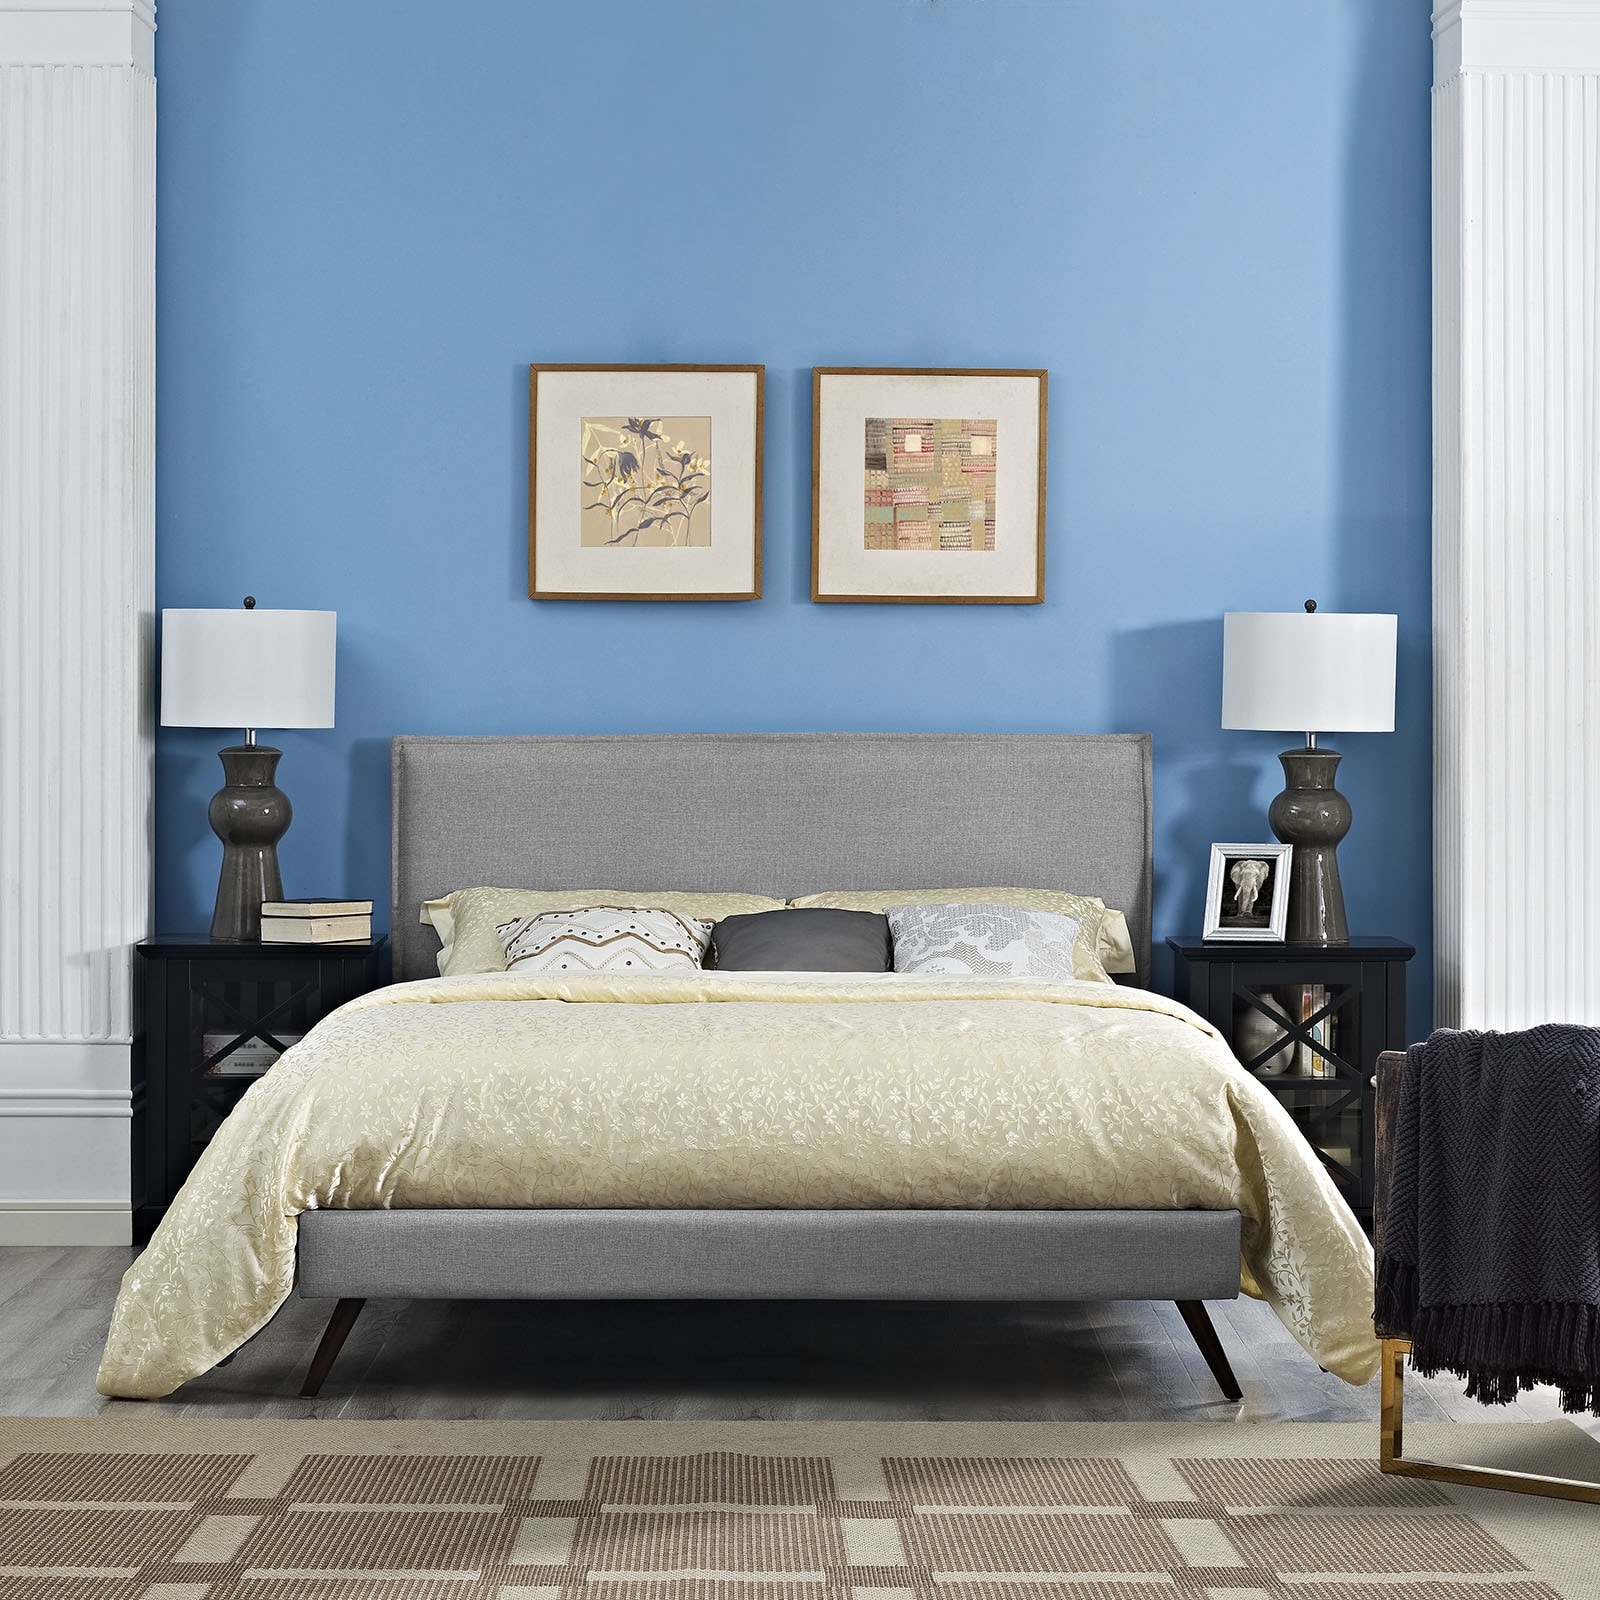 Shop Modway Camille Light Grey Fabric Platform Bed with Round ...